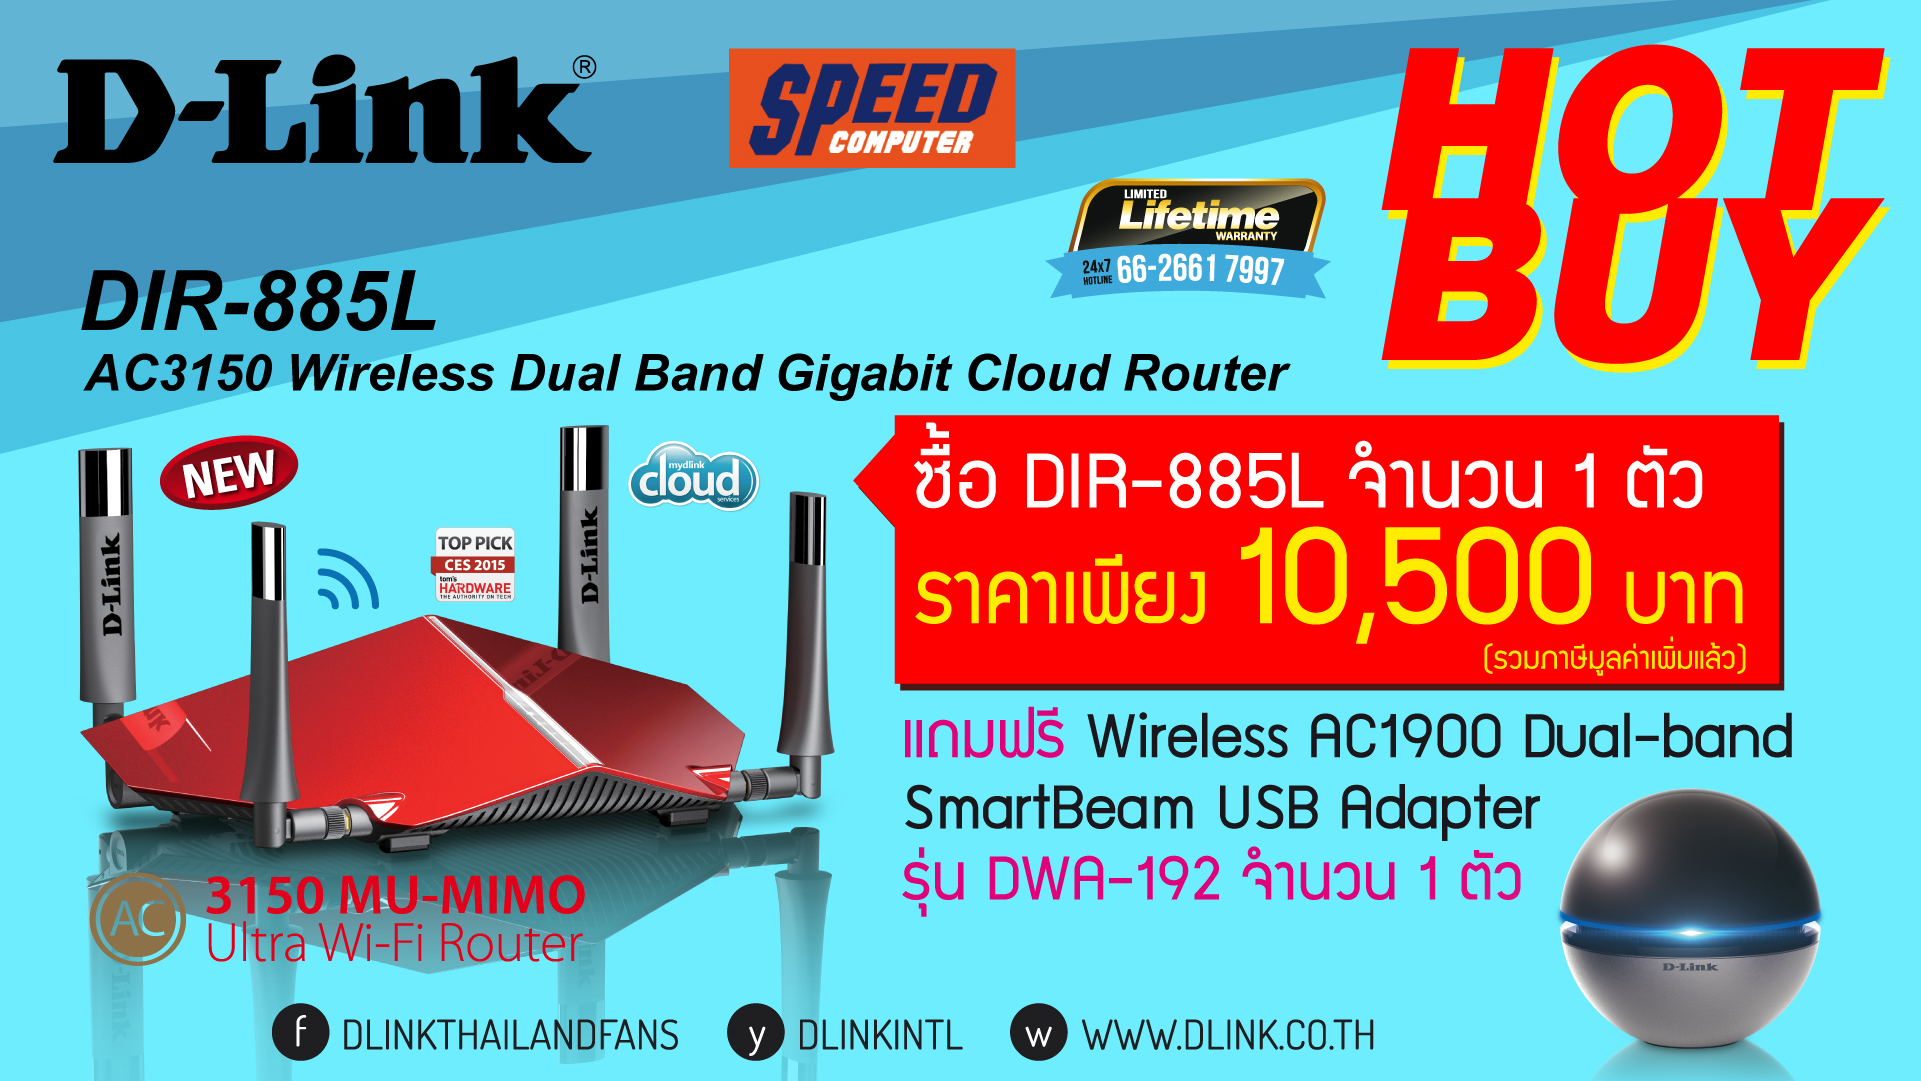 D-Link-Commart-Screen-for-Speed-March-16-10